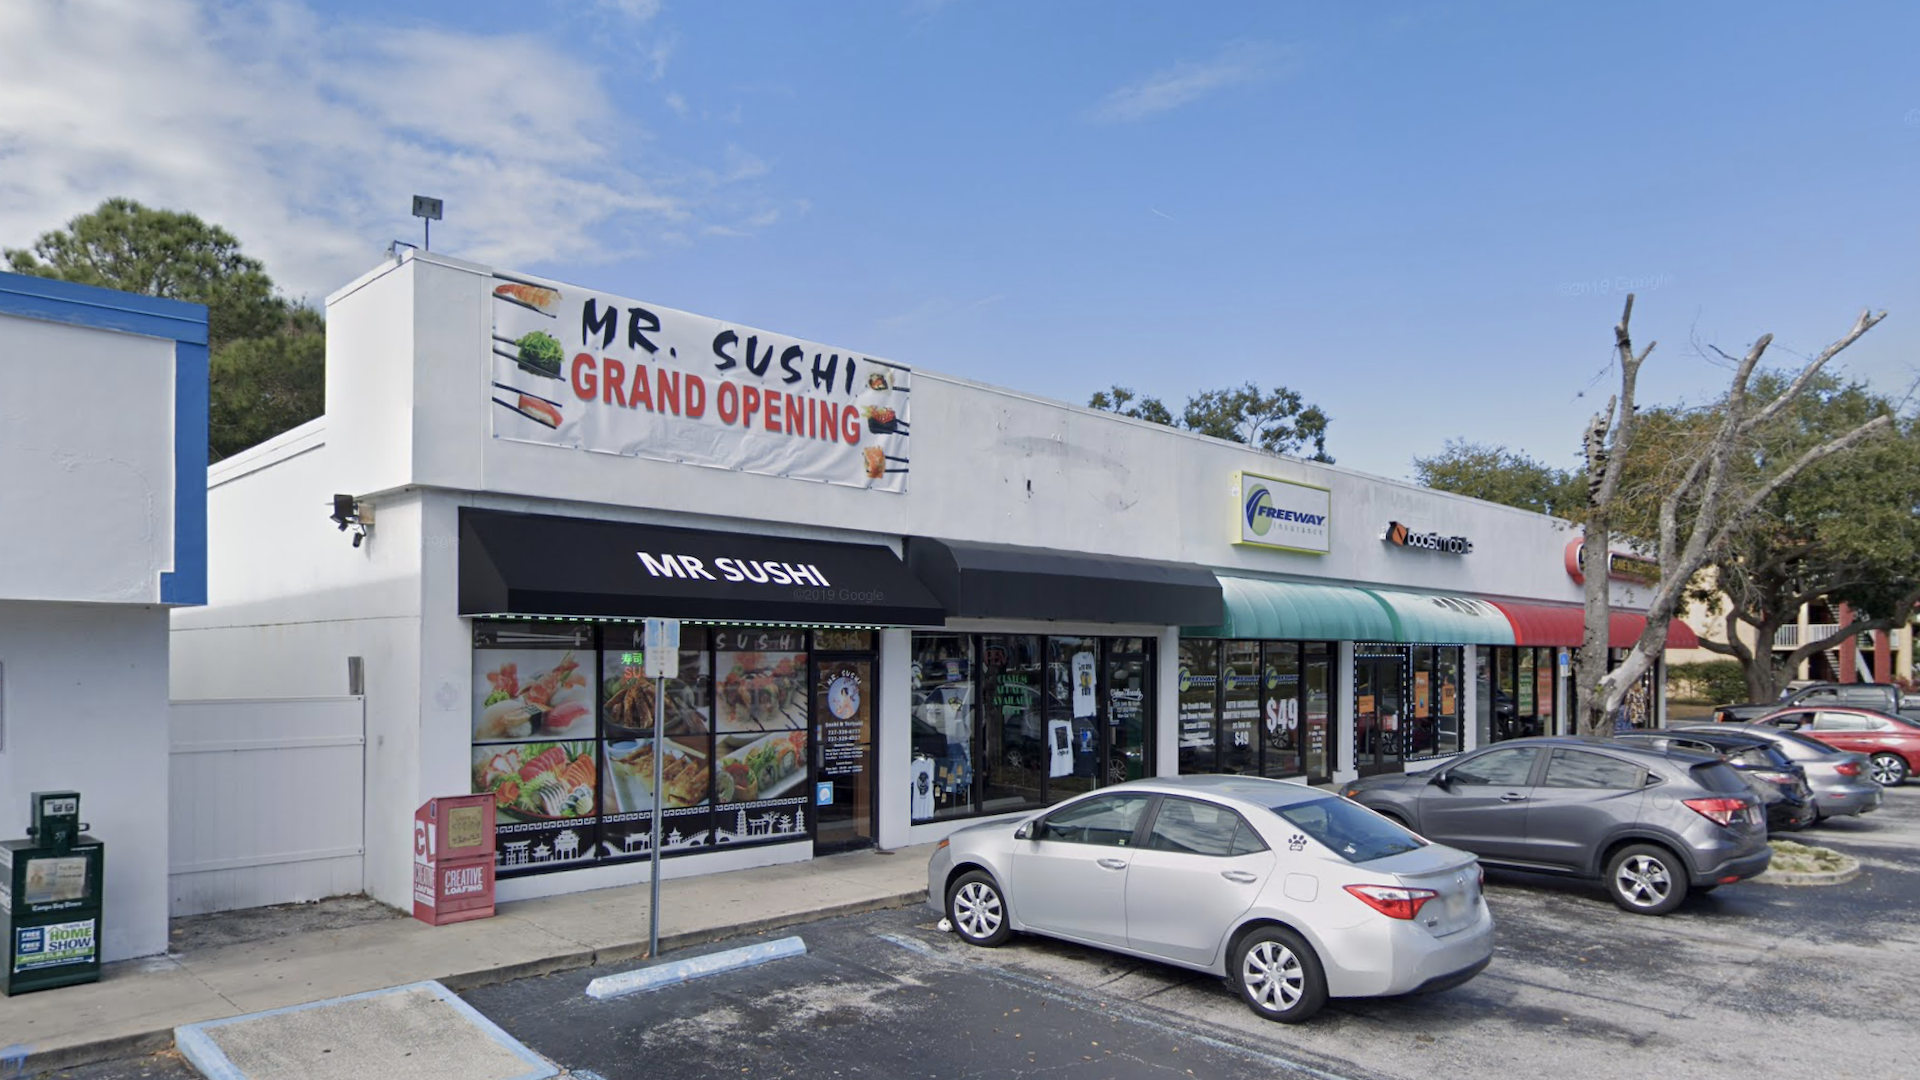 Exterior of a Strip Mall with a Sushi Banner, and several cars parked out front